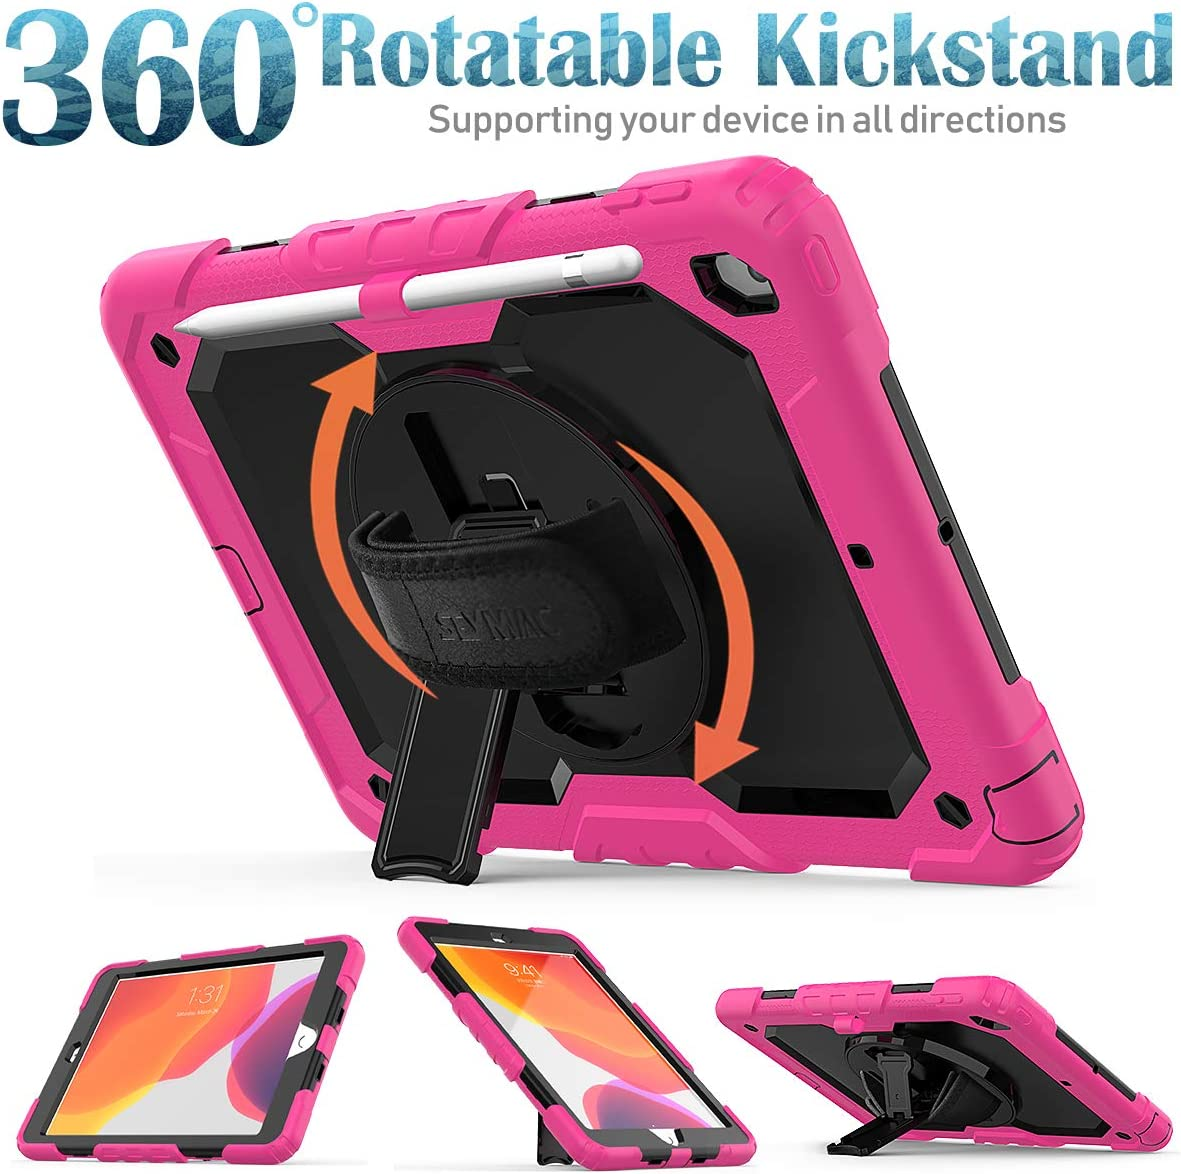 iPad 7th// 8th Generation Case with Screen Protector Shoulder Strap,Shockproof Cover with 360 Rotating Kickstand Hand Strap,Pencil Holder for iPad 10.2 Inch,Pink SEYMAC New iPad 10.2 Case 2020//2019